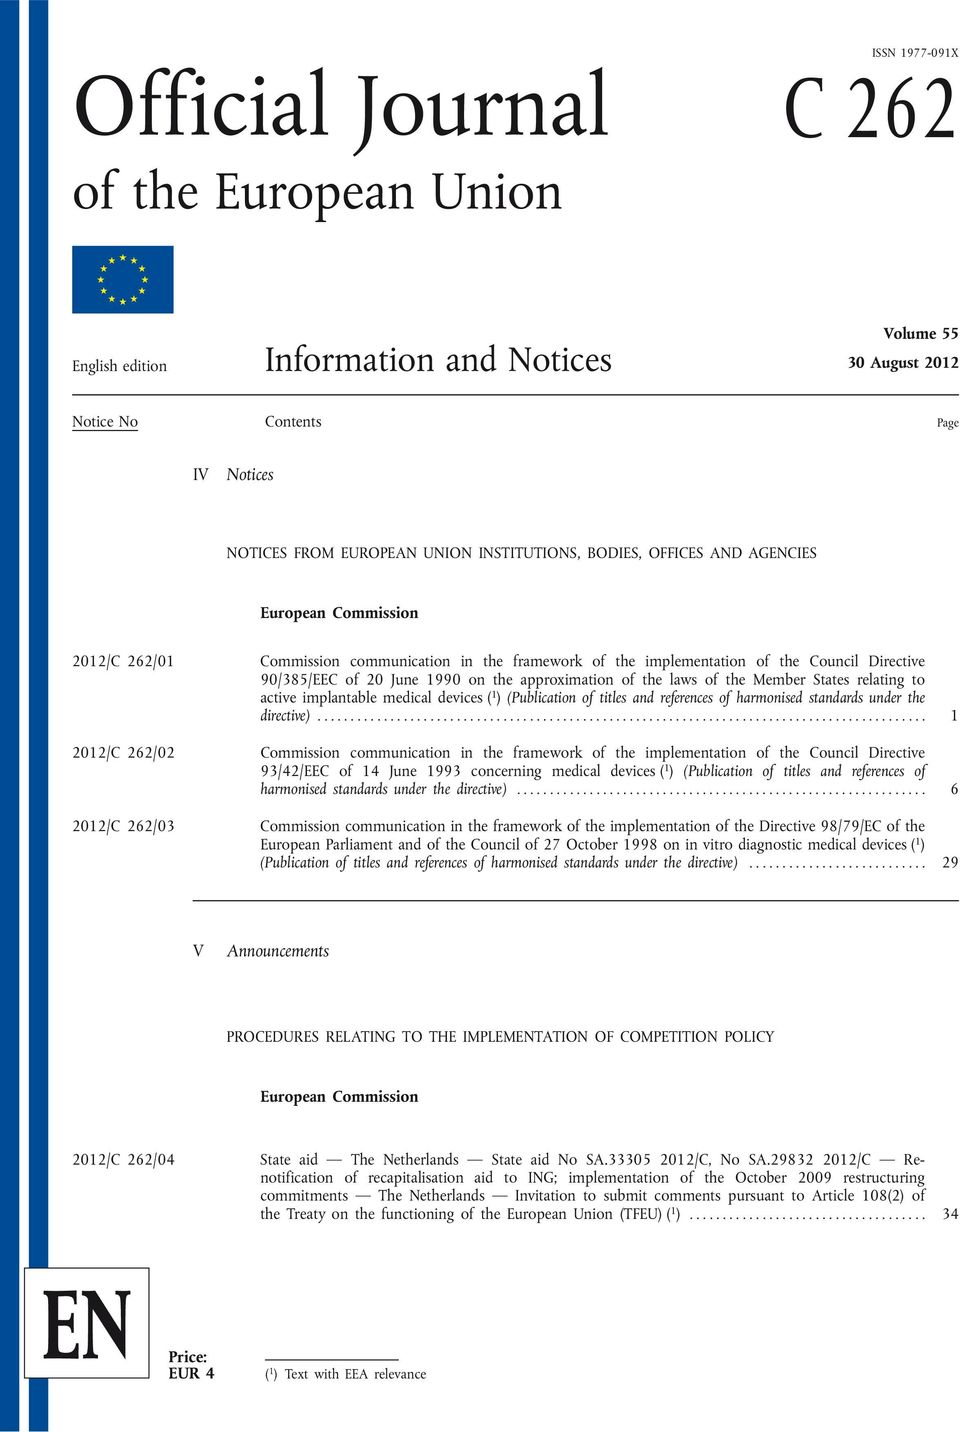 approximation of the laws of the Member States relating to active implantable medical devices ( 1 ) (Publication of titles and references of harmonised standards under the directive).